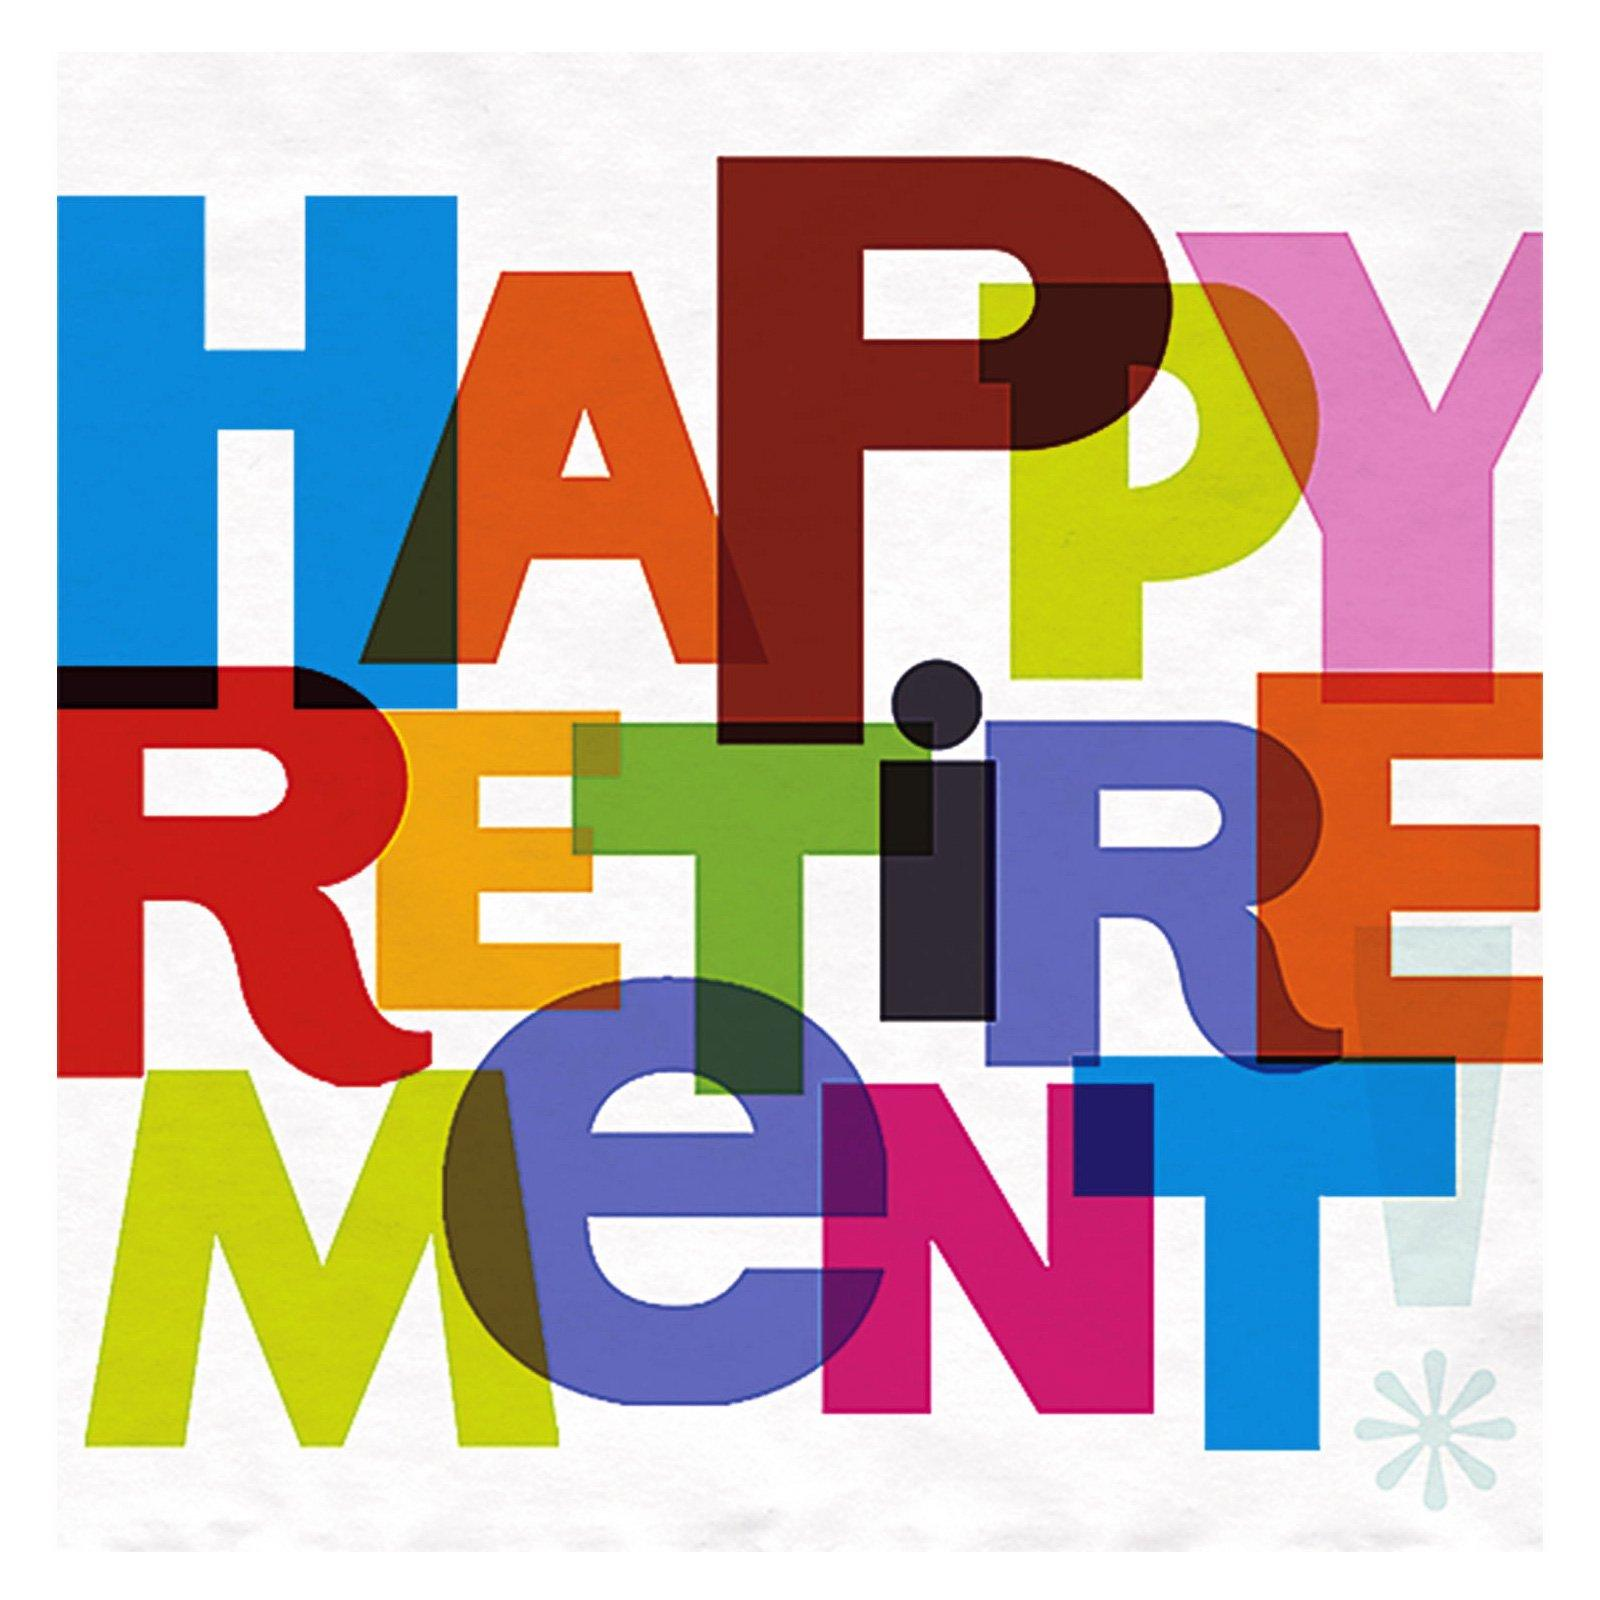 hight resolution of retirement clip art borders free clipart images